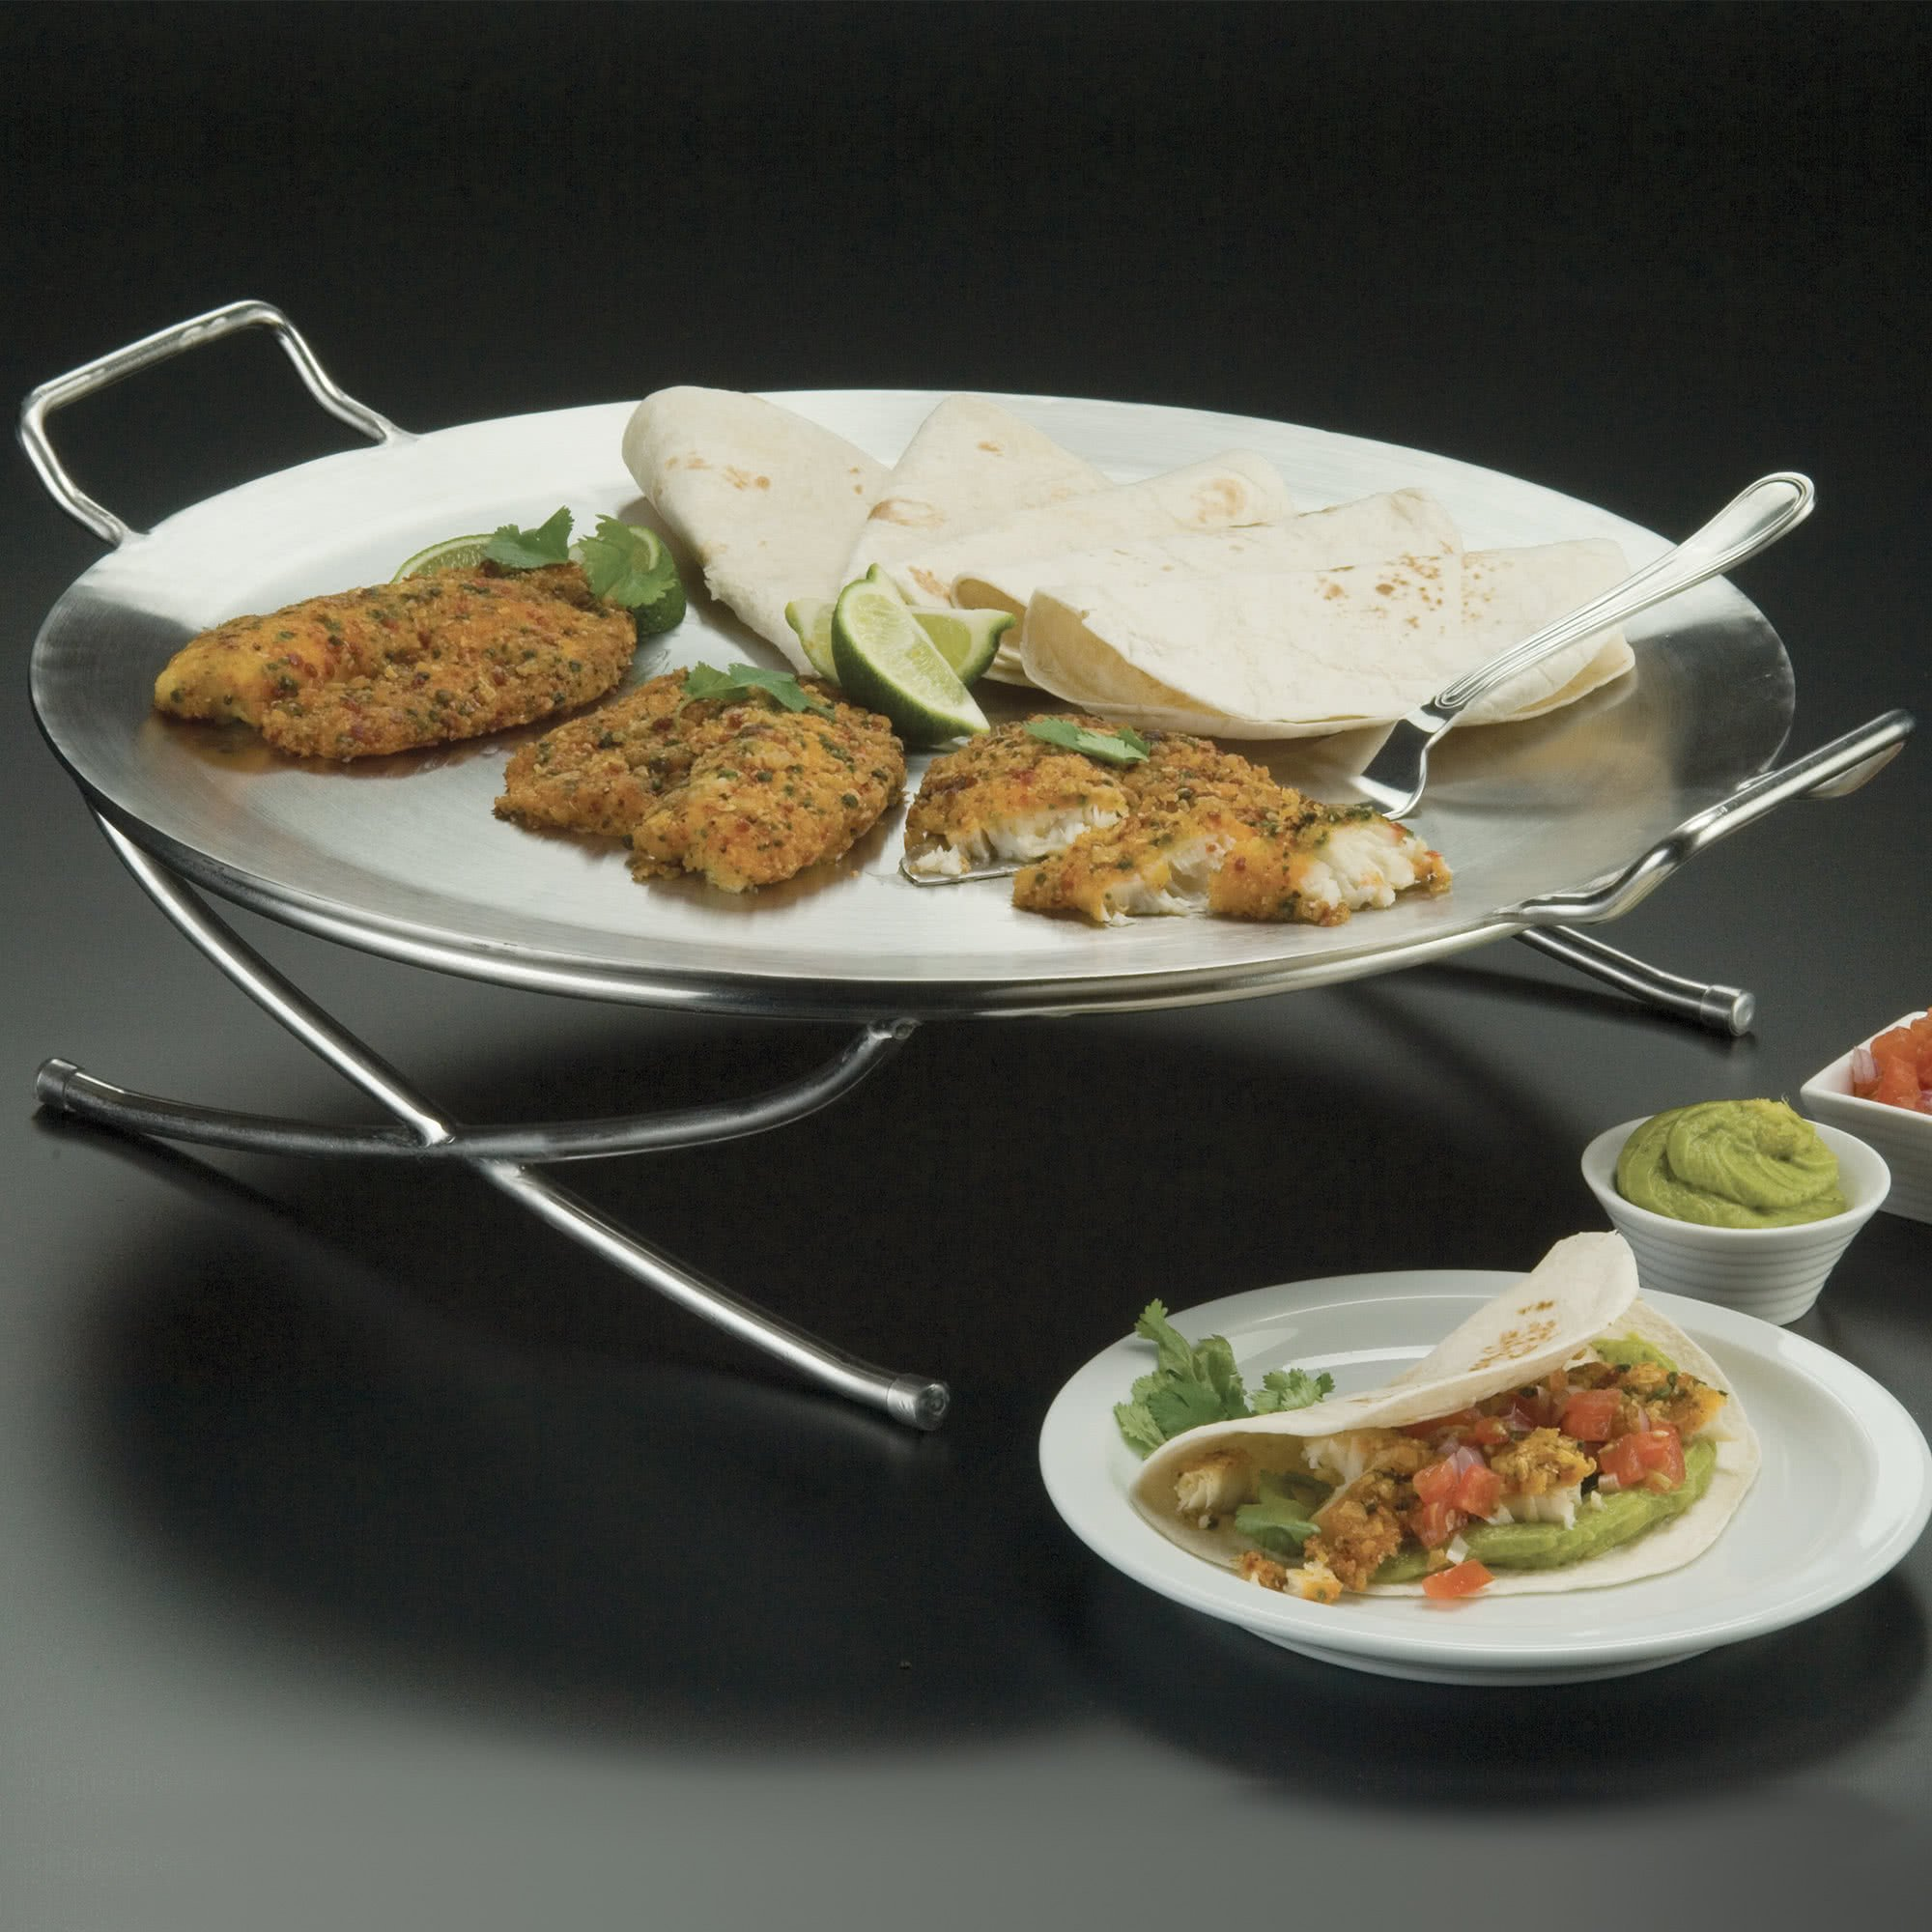 TableTop king GSSS20 Round Stainless Steel X-Leg Griddle Stand 17''